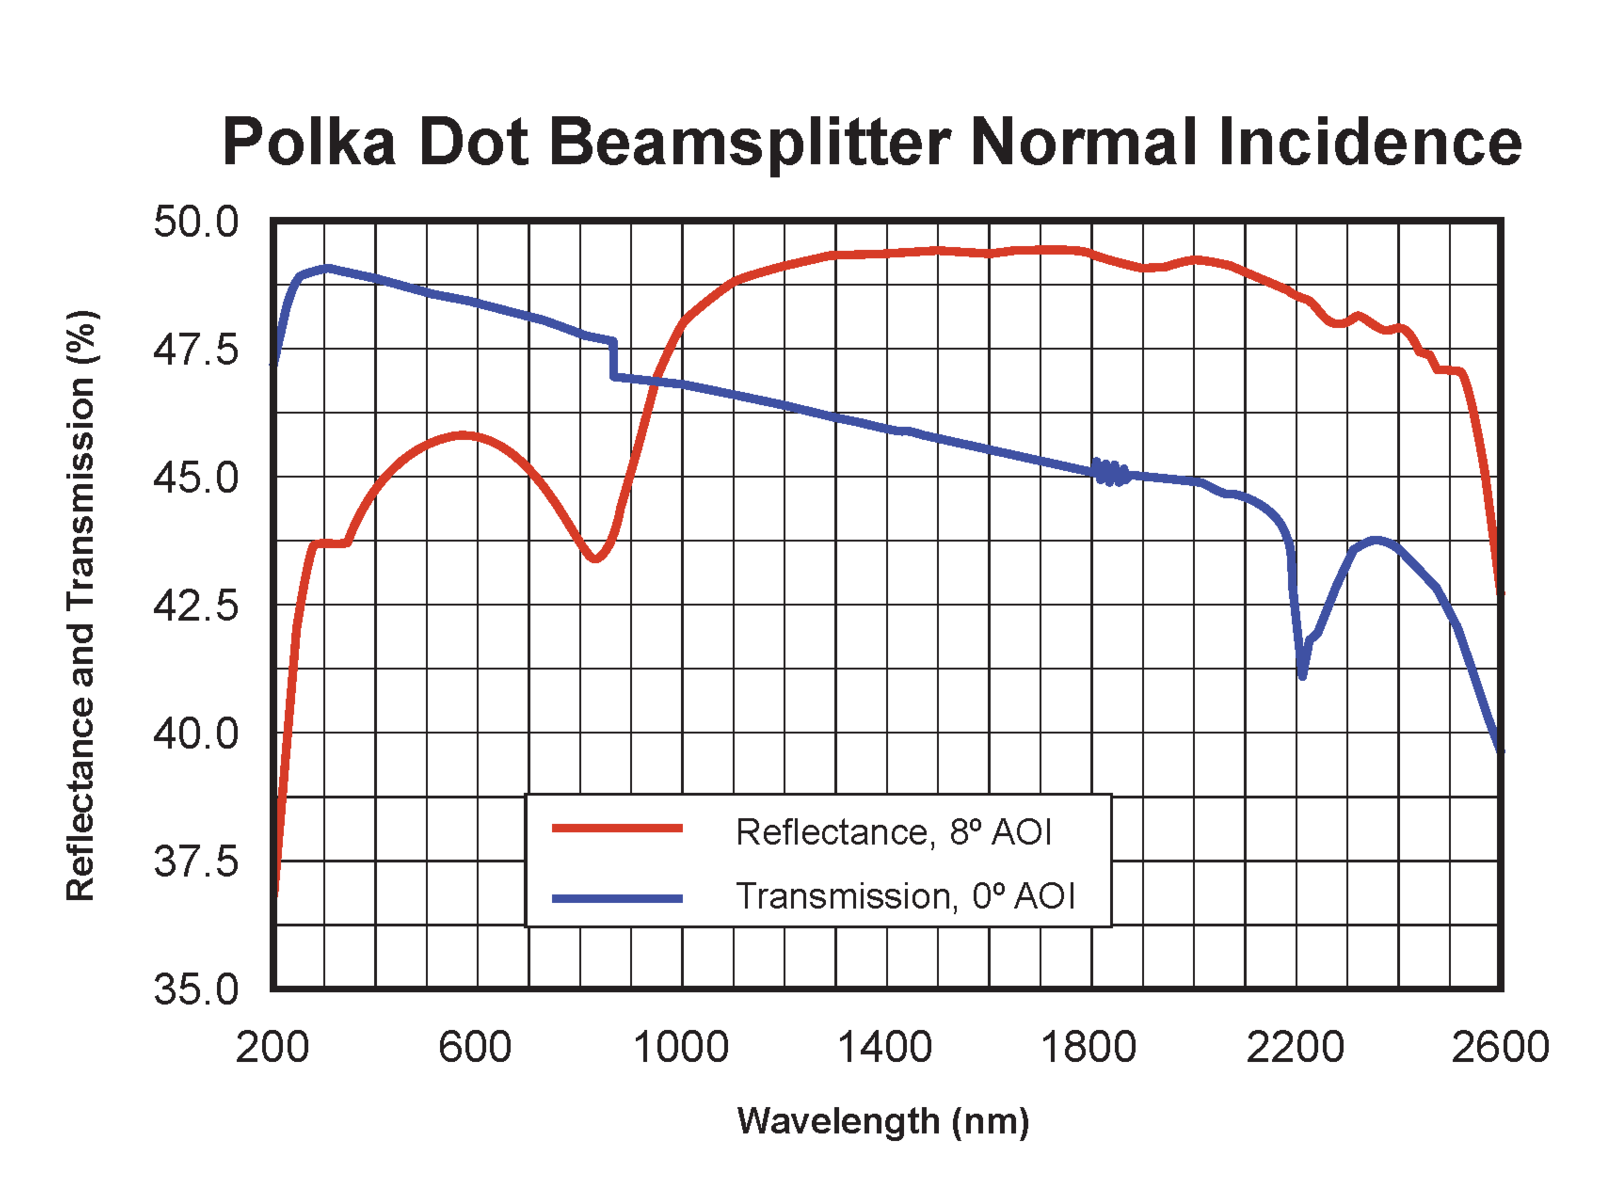 Polka Dot beamsplitter normal incidence